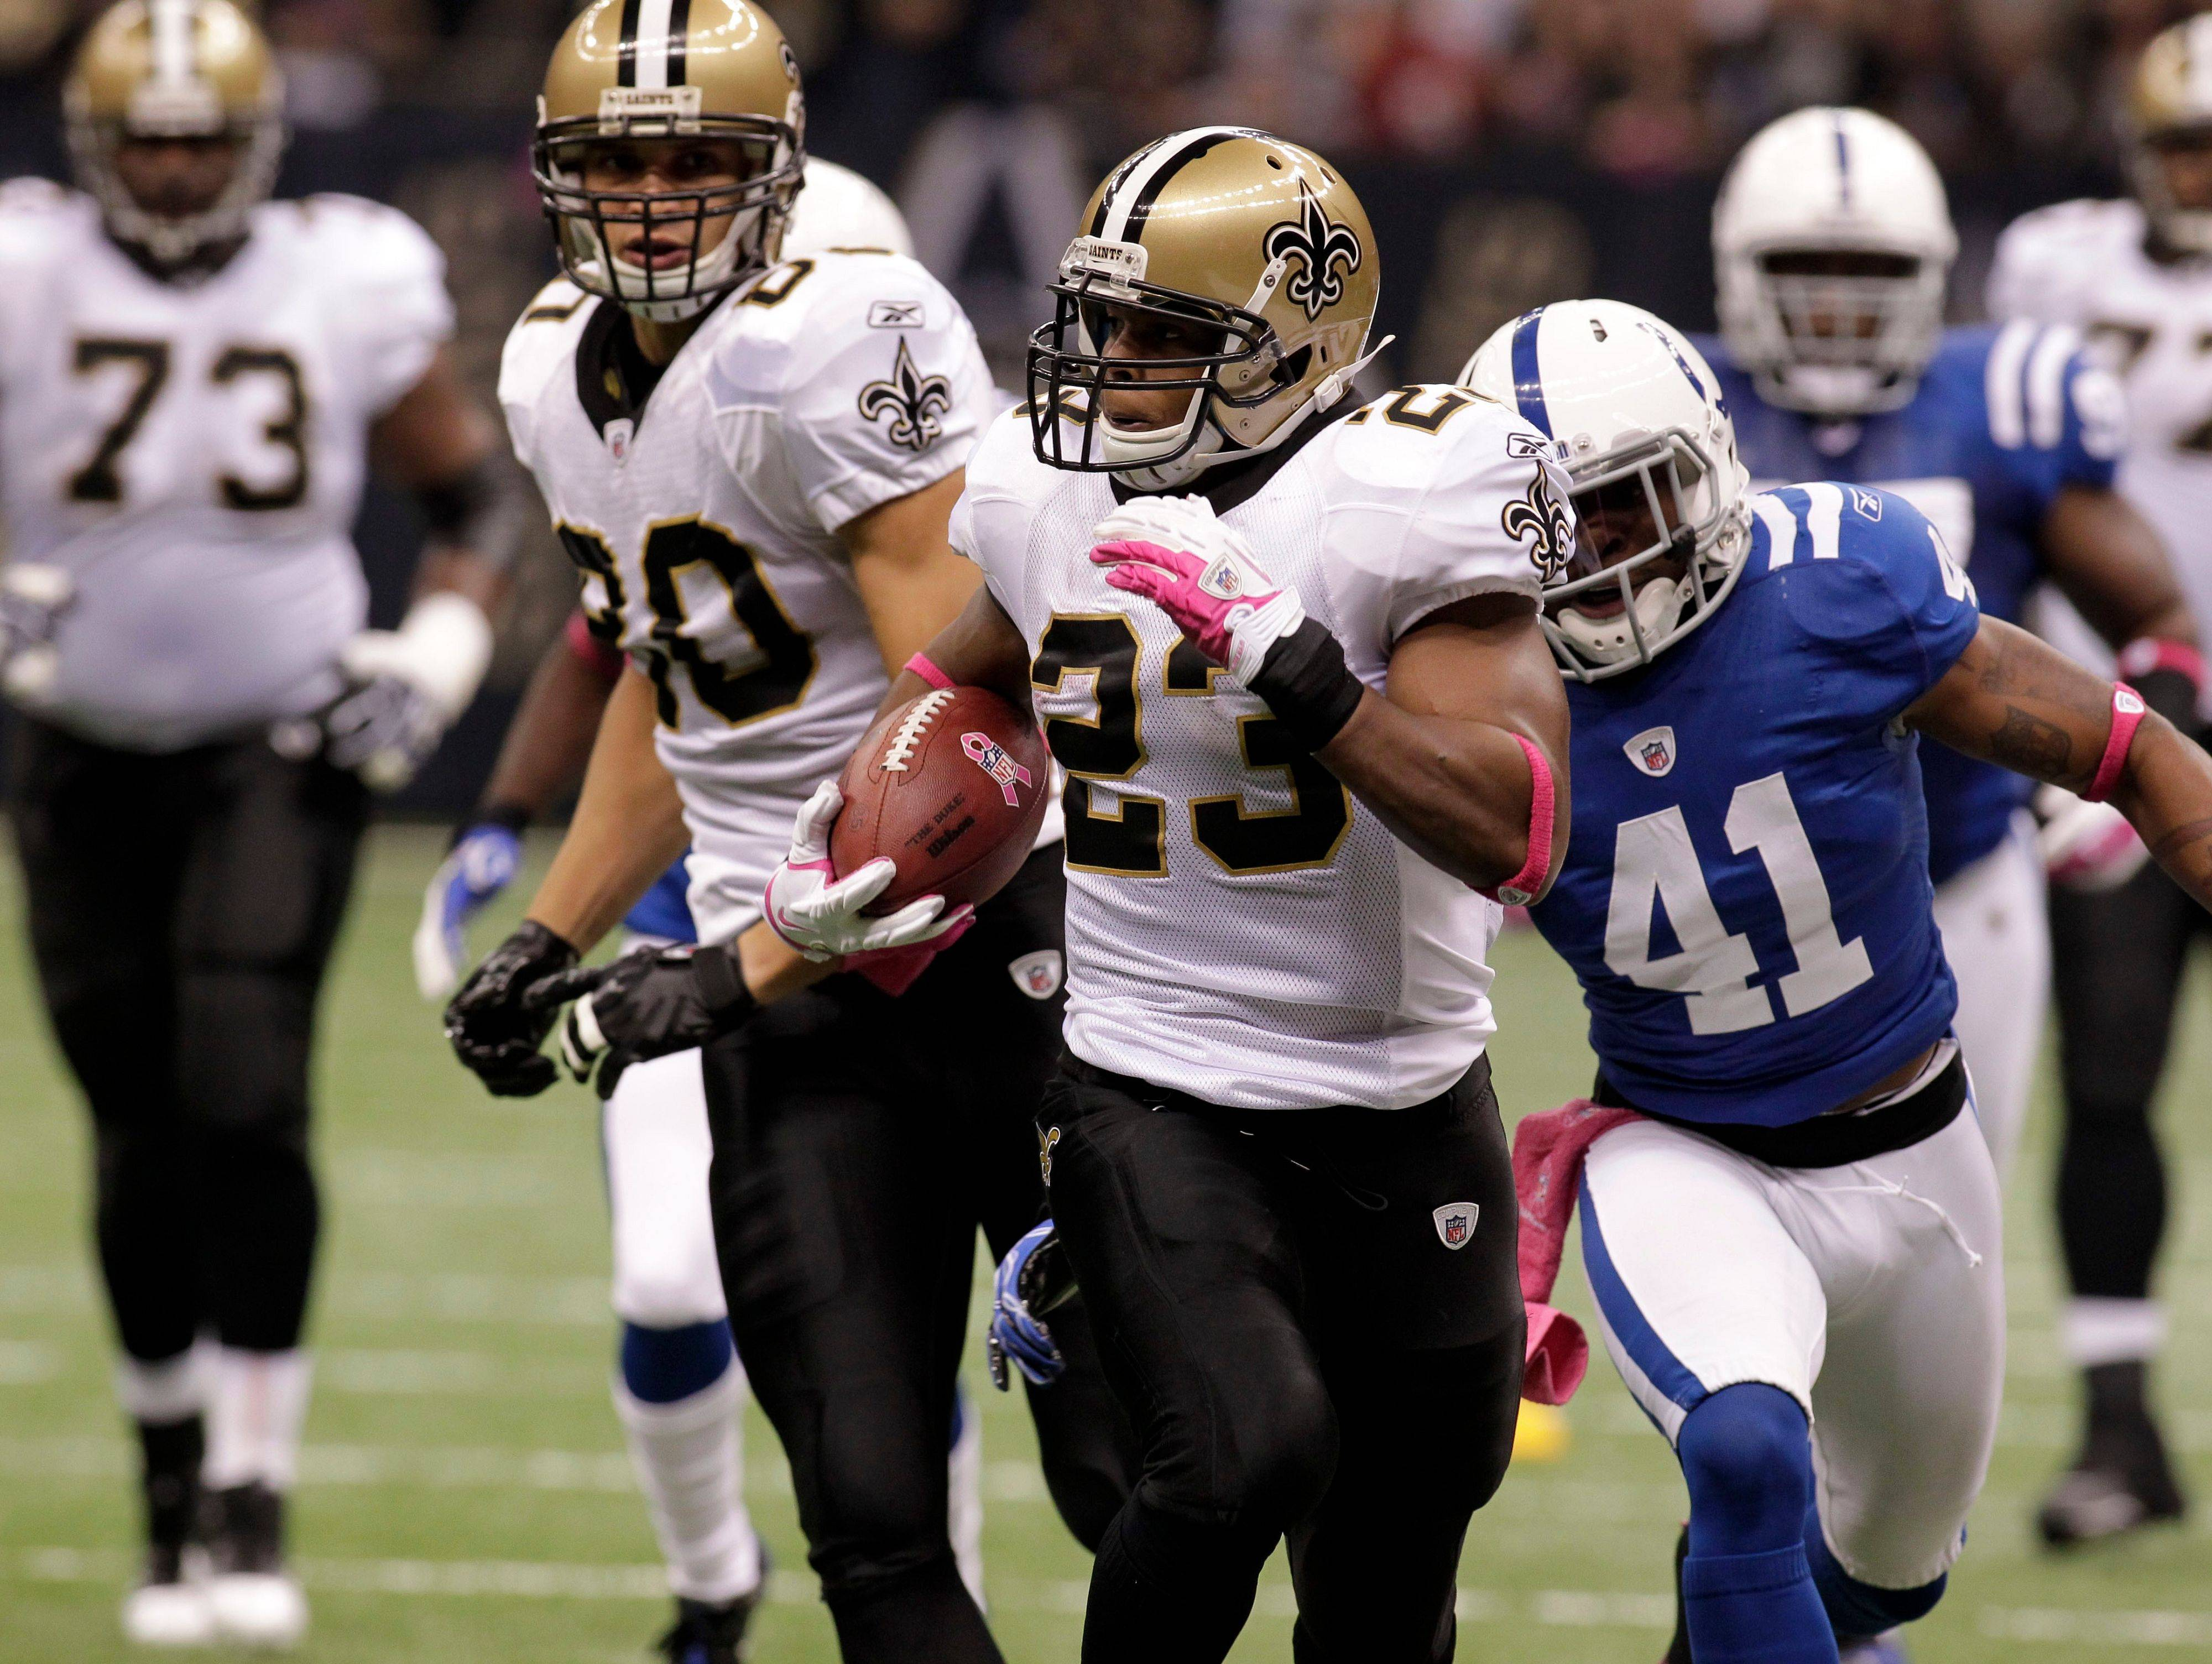 Former Illini running back Pierre Thomas could pile up big points this weekend when New Orleans plays St. Louis, says fantasy football columnist John Dietz.